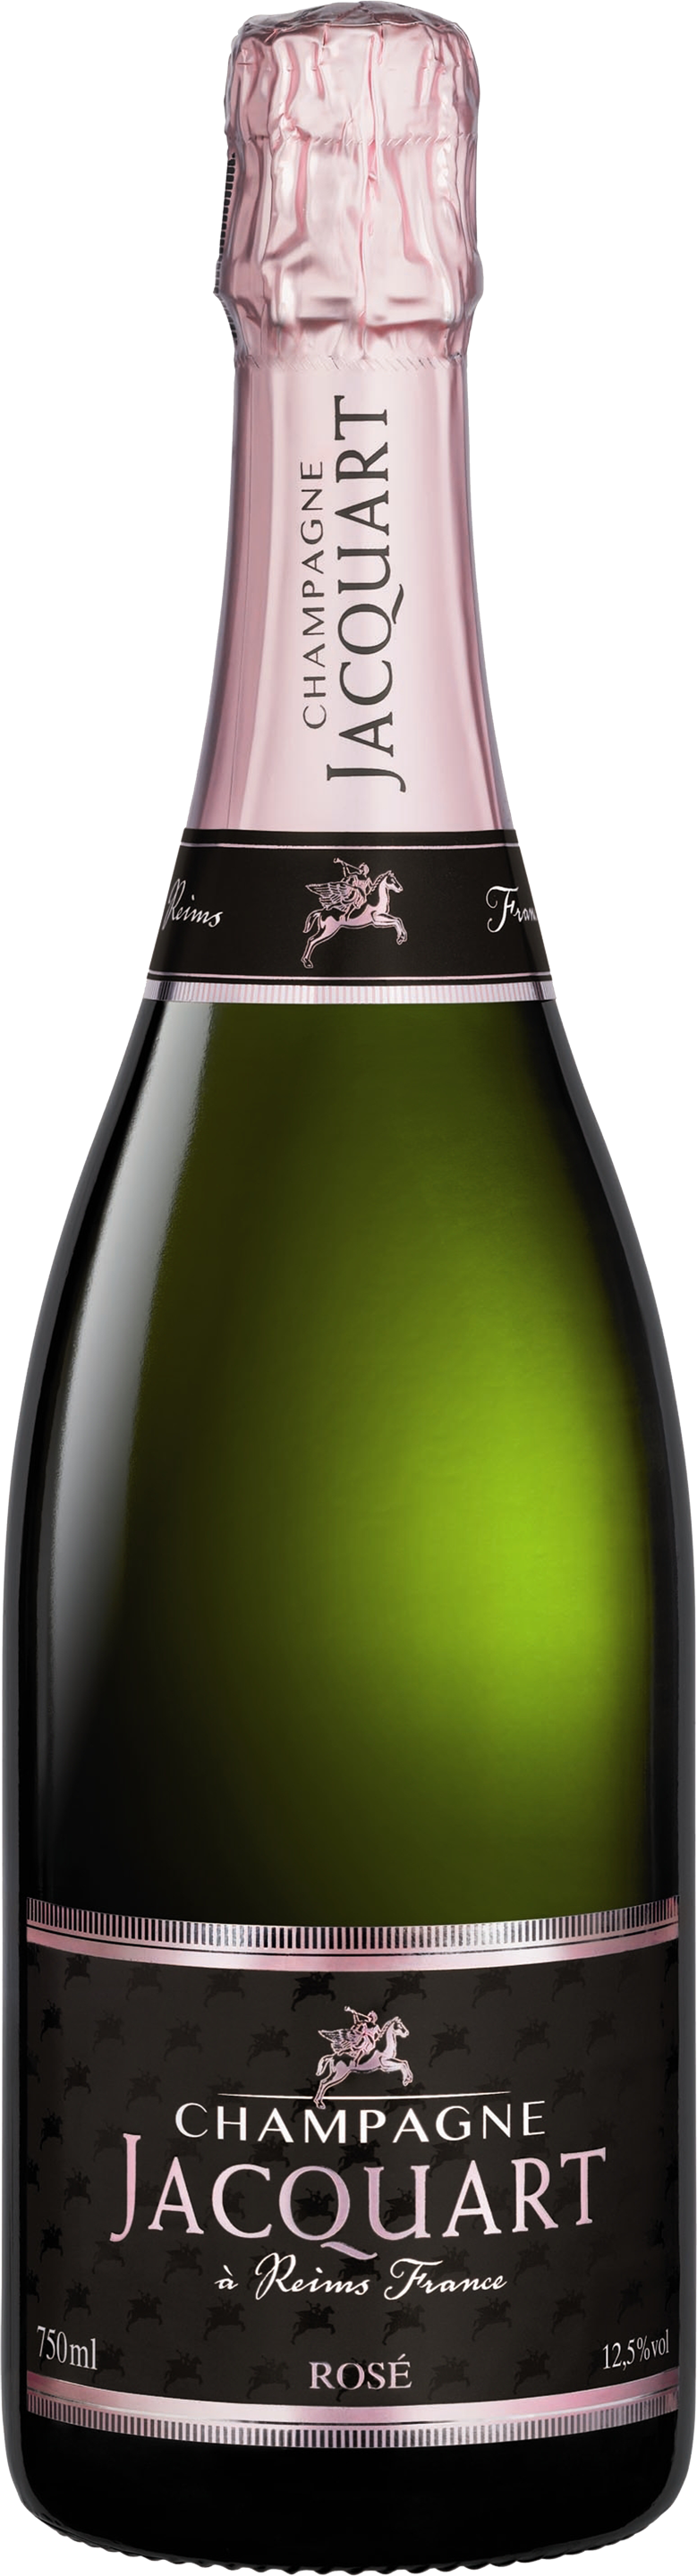 Alcohol bottle png. Images free download champagne